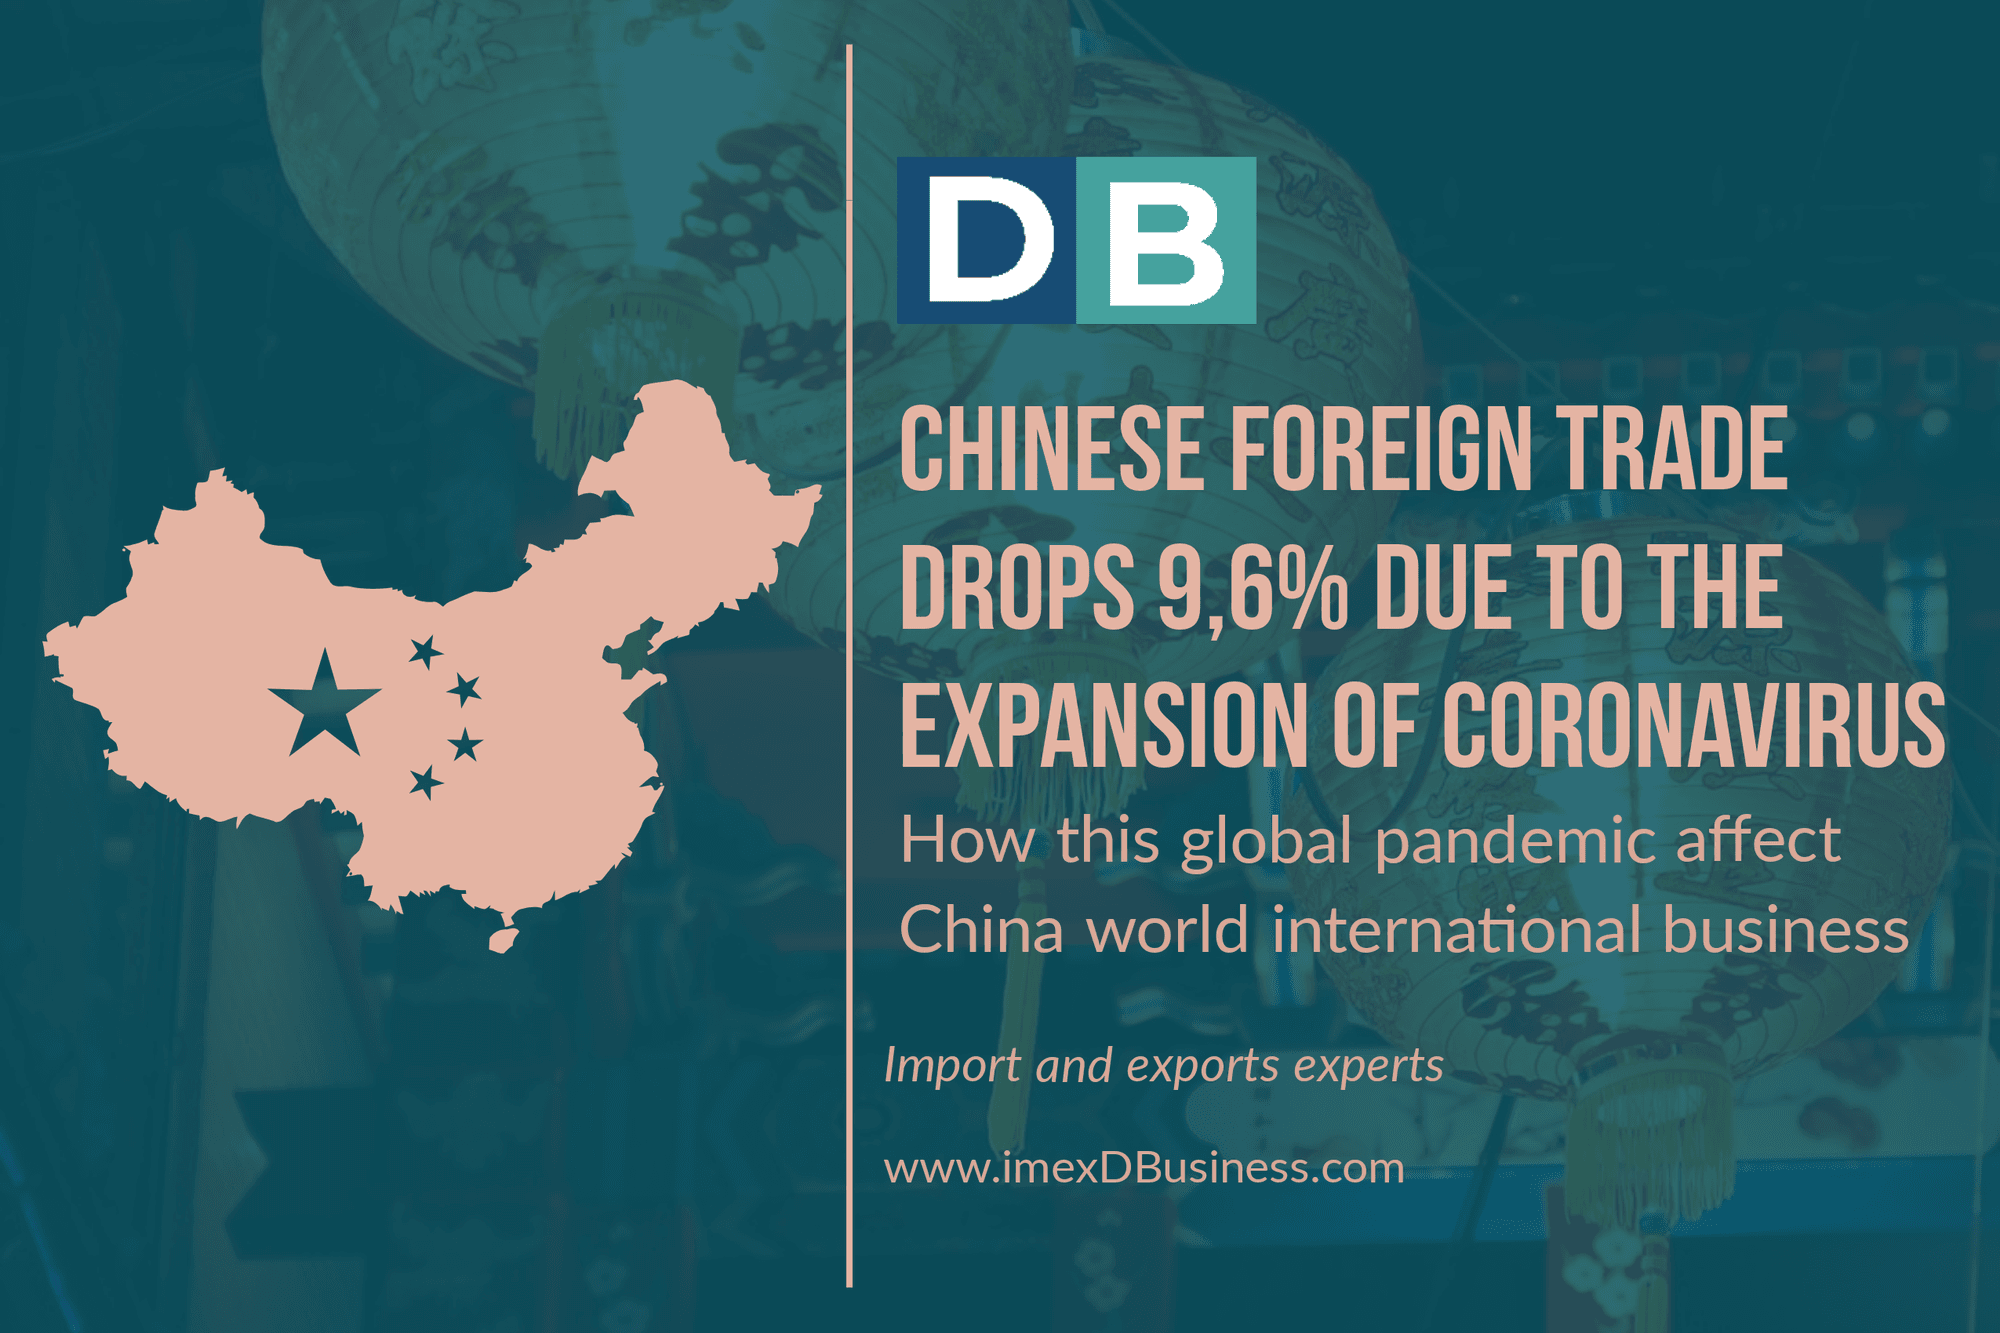 Chinese foreign trade Drops 9.6% due to the expansion of the coronavirus